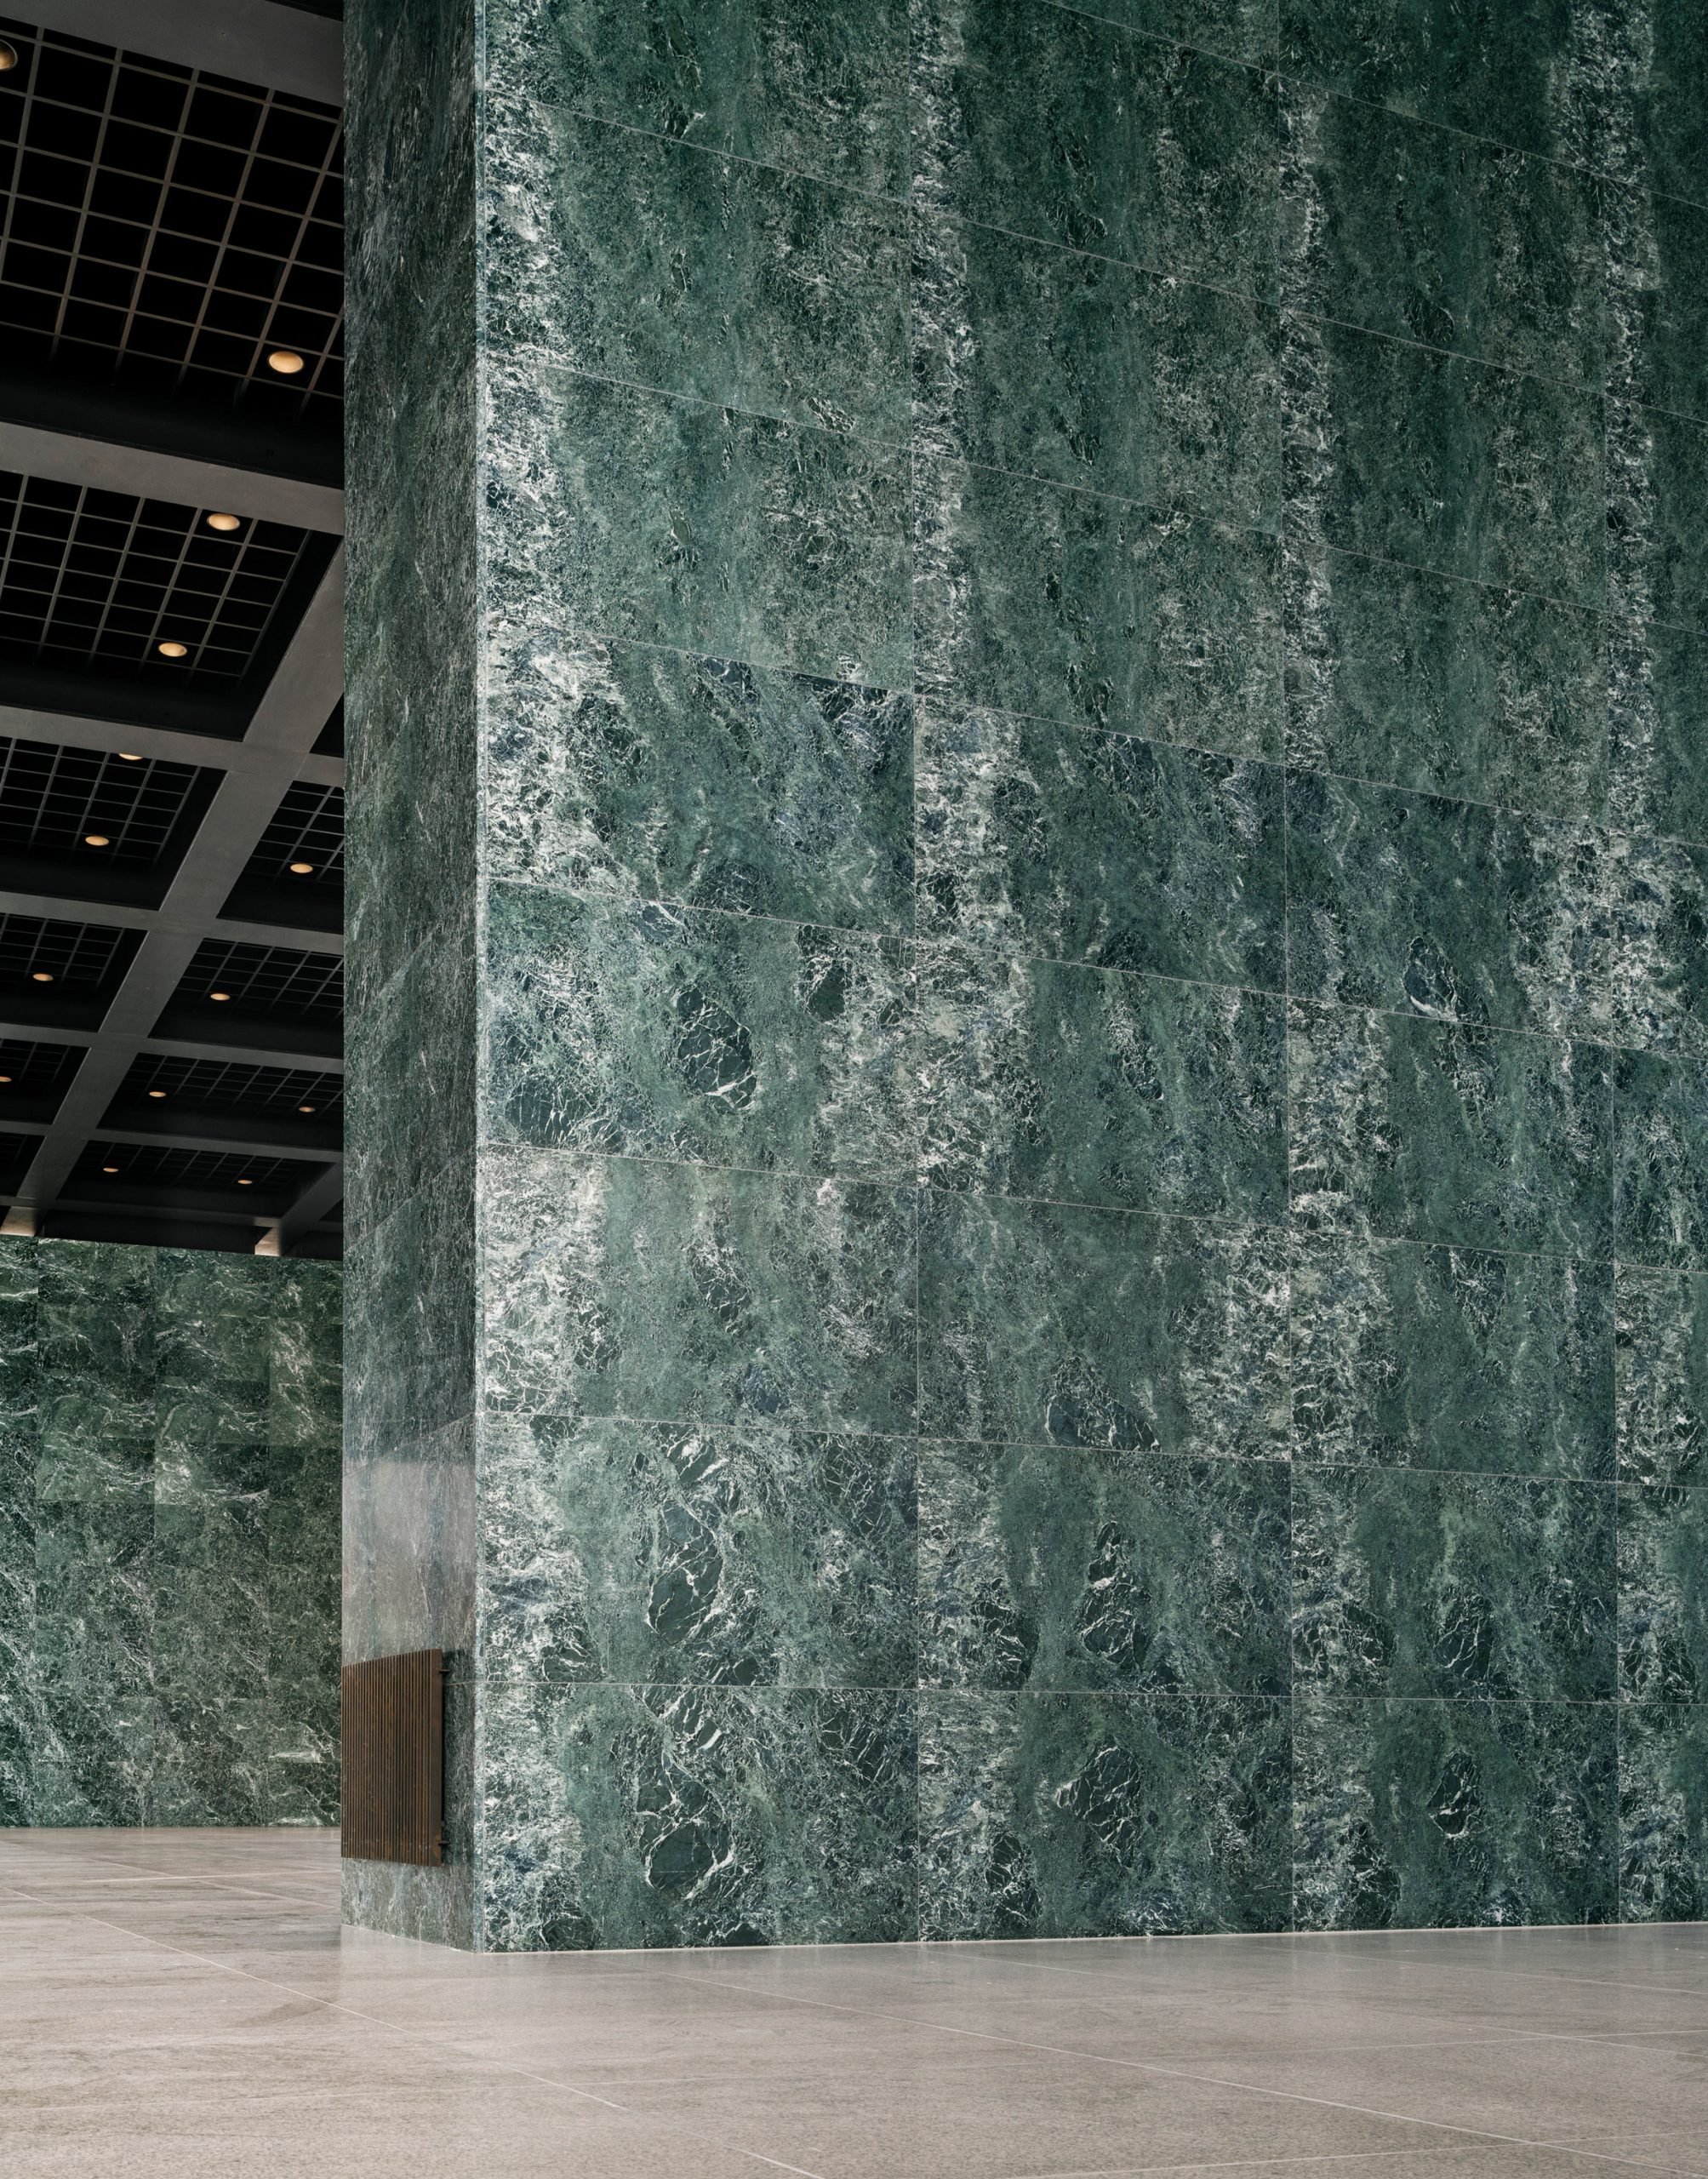 A marble-clad wall